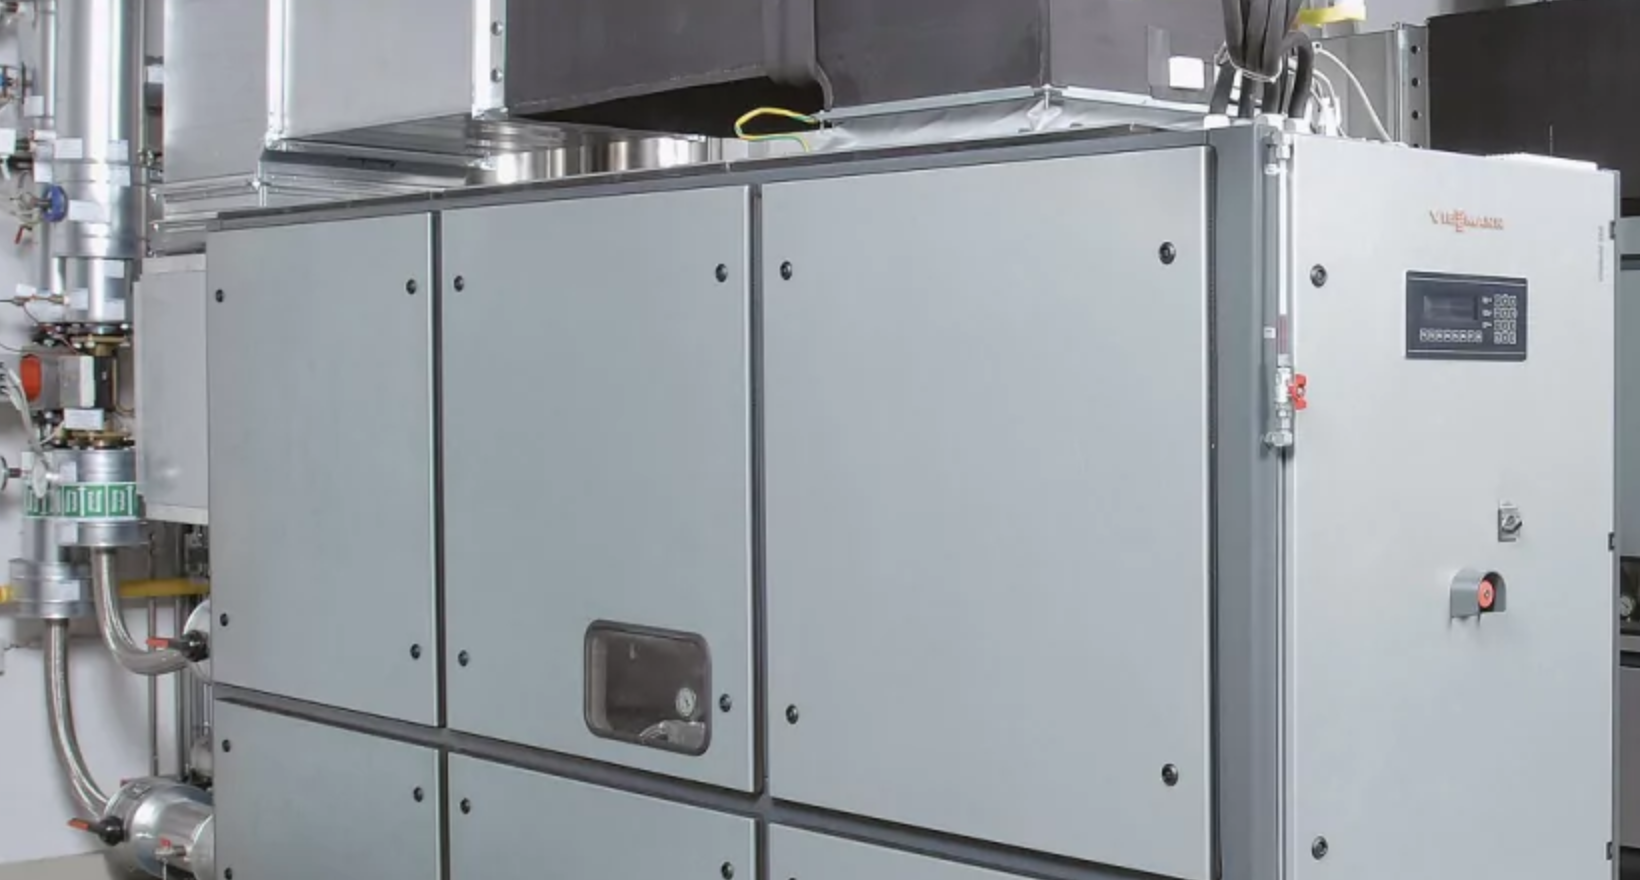 Viessmann - Viessmann - Combined heat and power boiler units up to 530 kWel and 660 kWth - Biogas CHP plant